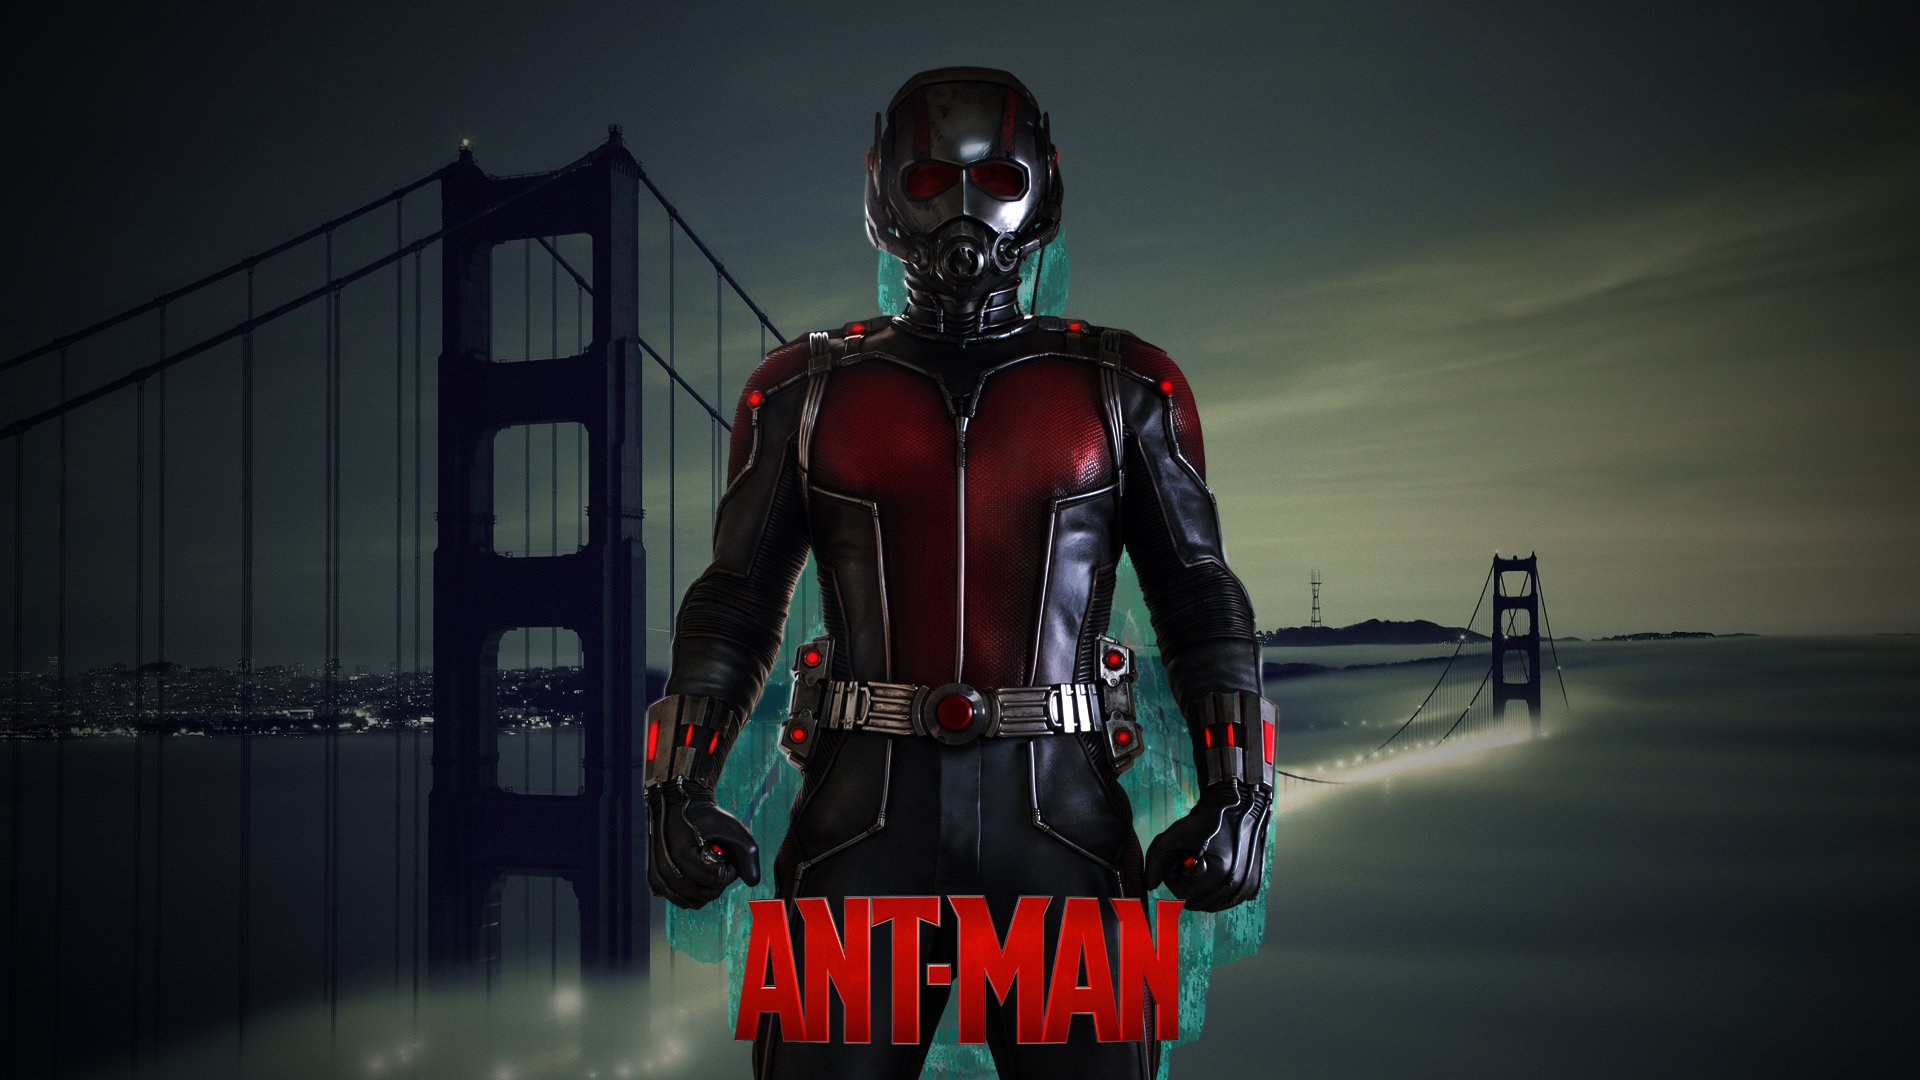 Ant Man HD Background Wallpapers Attachment 17978   Amazing Wallpaperz 1920x1080